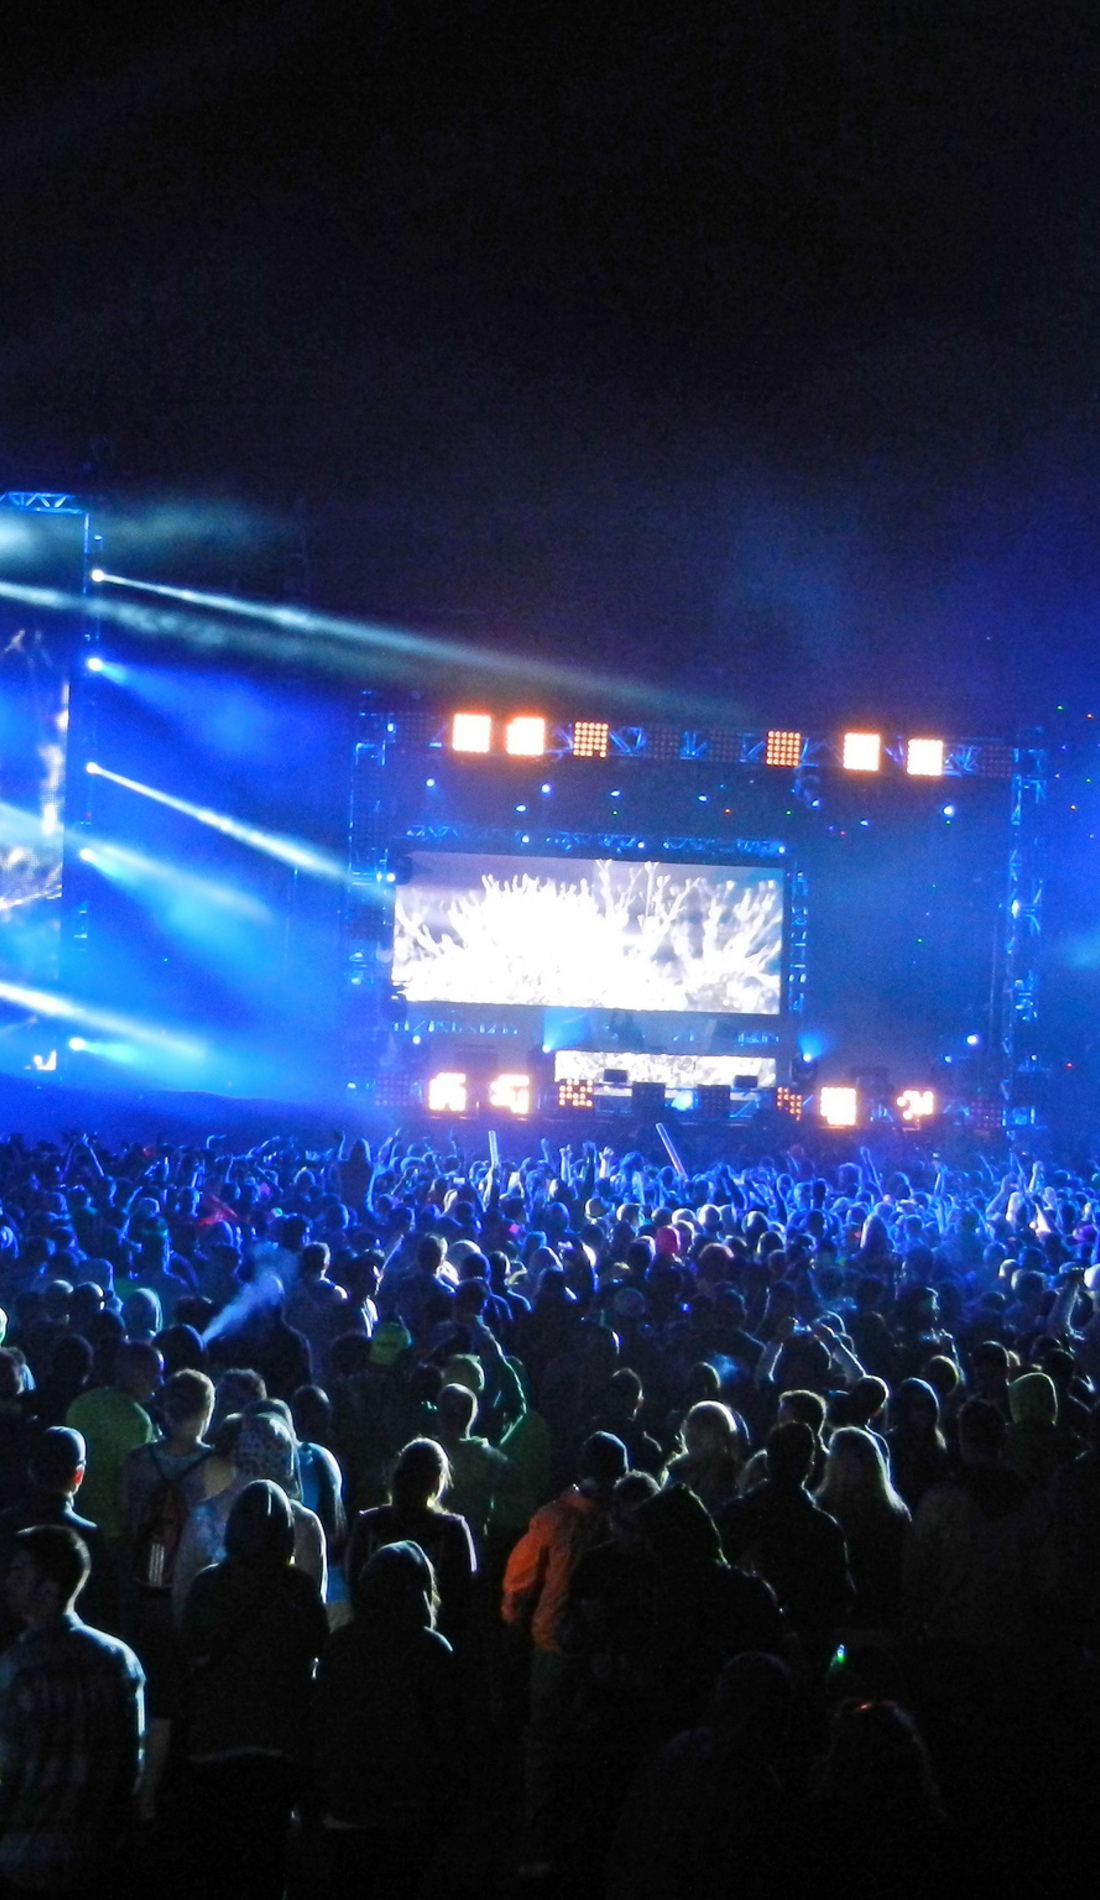 A ONE Music Festival live event